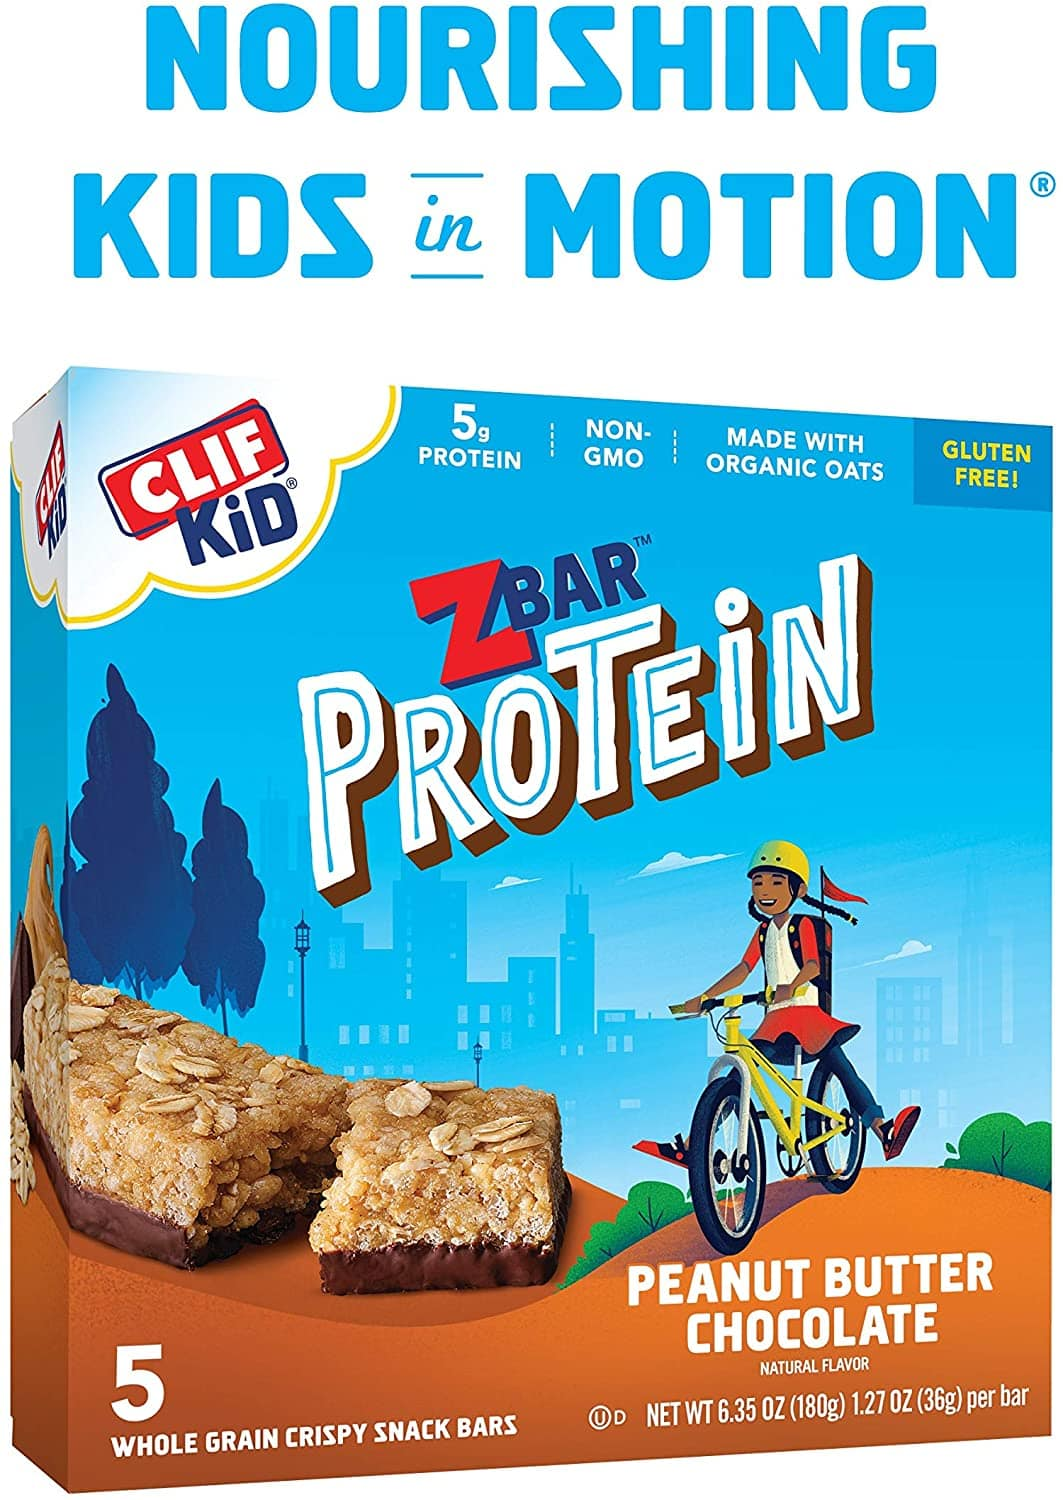 CLIF KID ZBAR - Protein Granola Bars - Peanut Butter Chocolate Flavor (1.27 Ounce Gluten Free Bars, 5 count) $2.32 or less  - FS w/ Prime